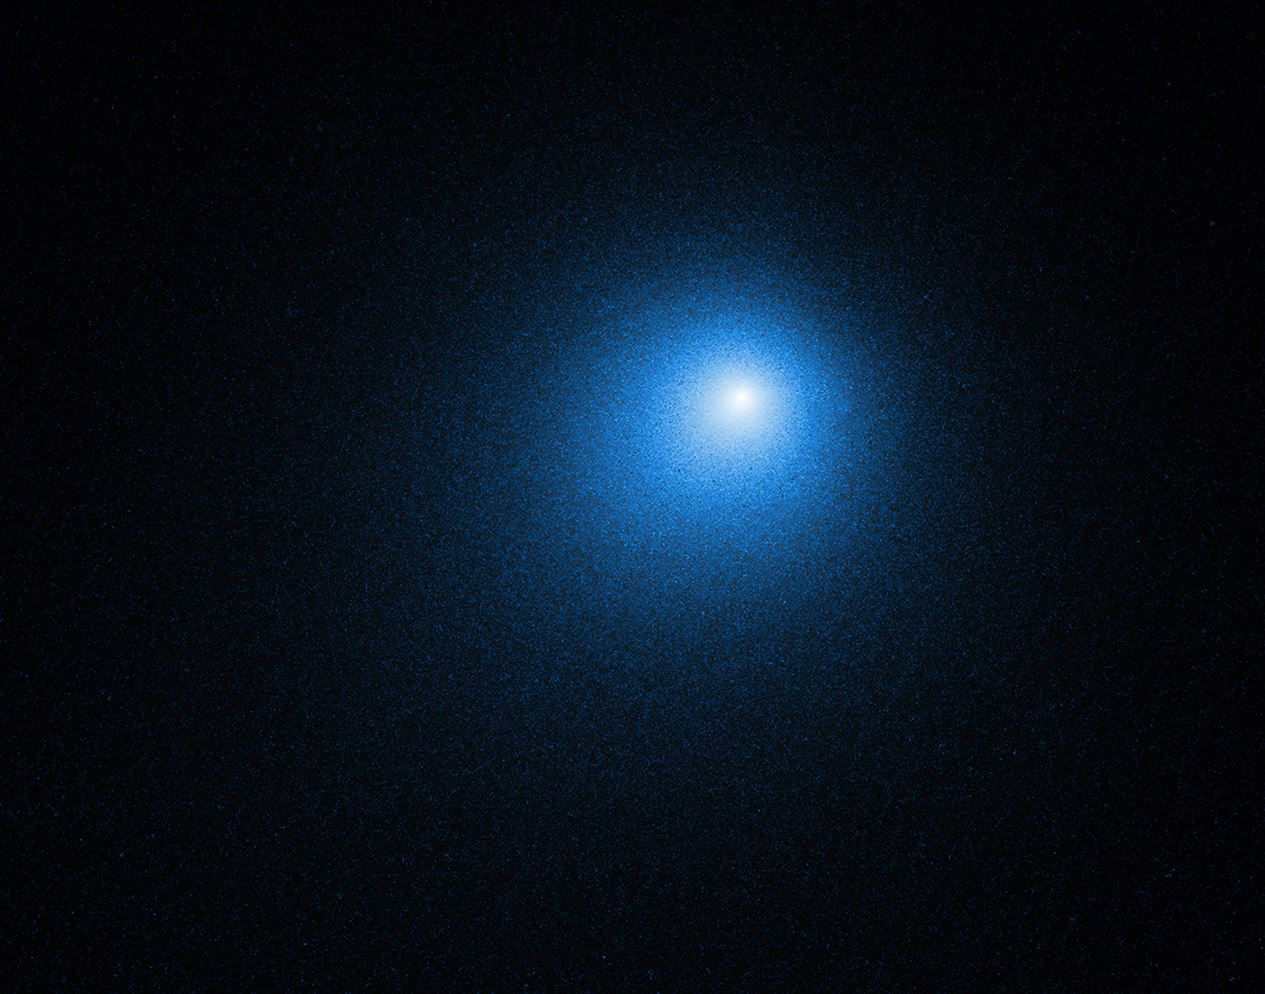 Hubble captured this view of comet 46P/Wirtanen on Dec. 13, 2018. - Image Credit: NASA, ESA, D. Bodewits (Auburn University) and J.-Y. Li (Planetary Science Institute)